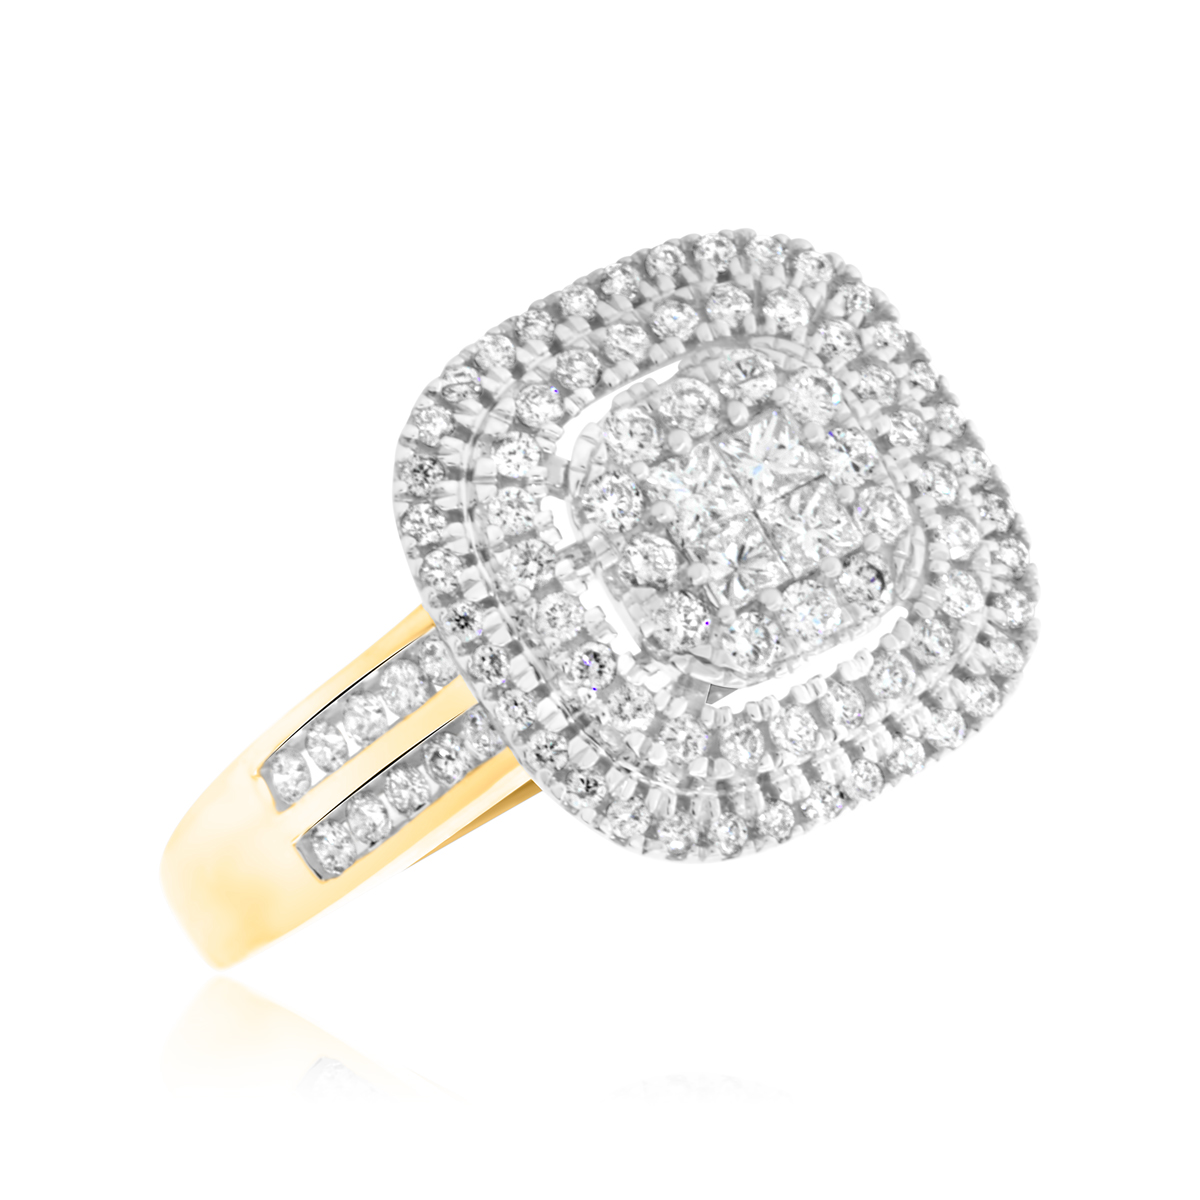 7/8 Carat T.W. Princess, Round Cut Diamond Ladies Engagement Ring 14K Yellow Gold